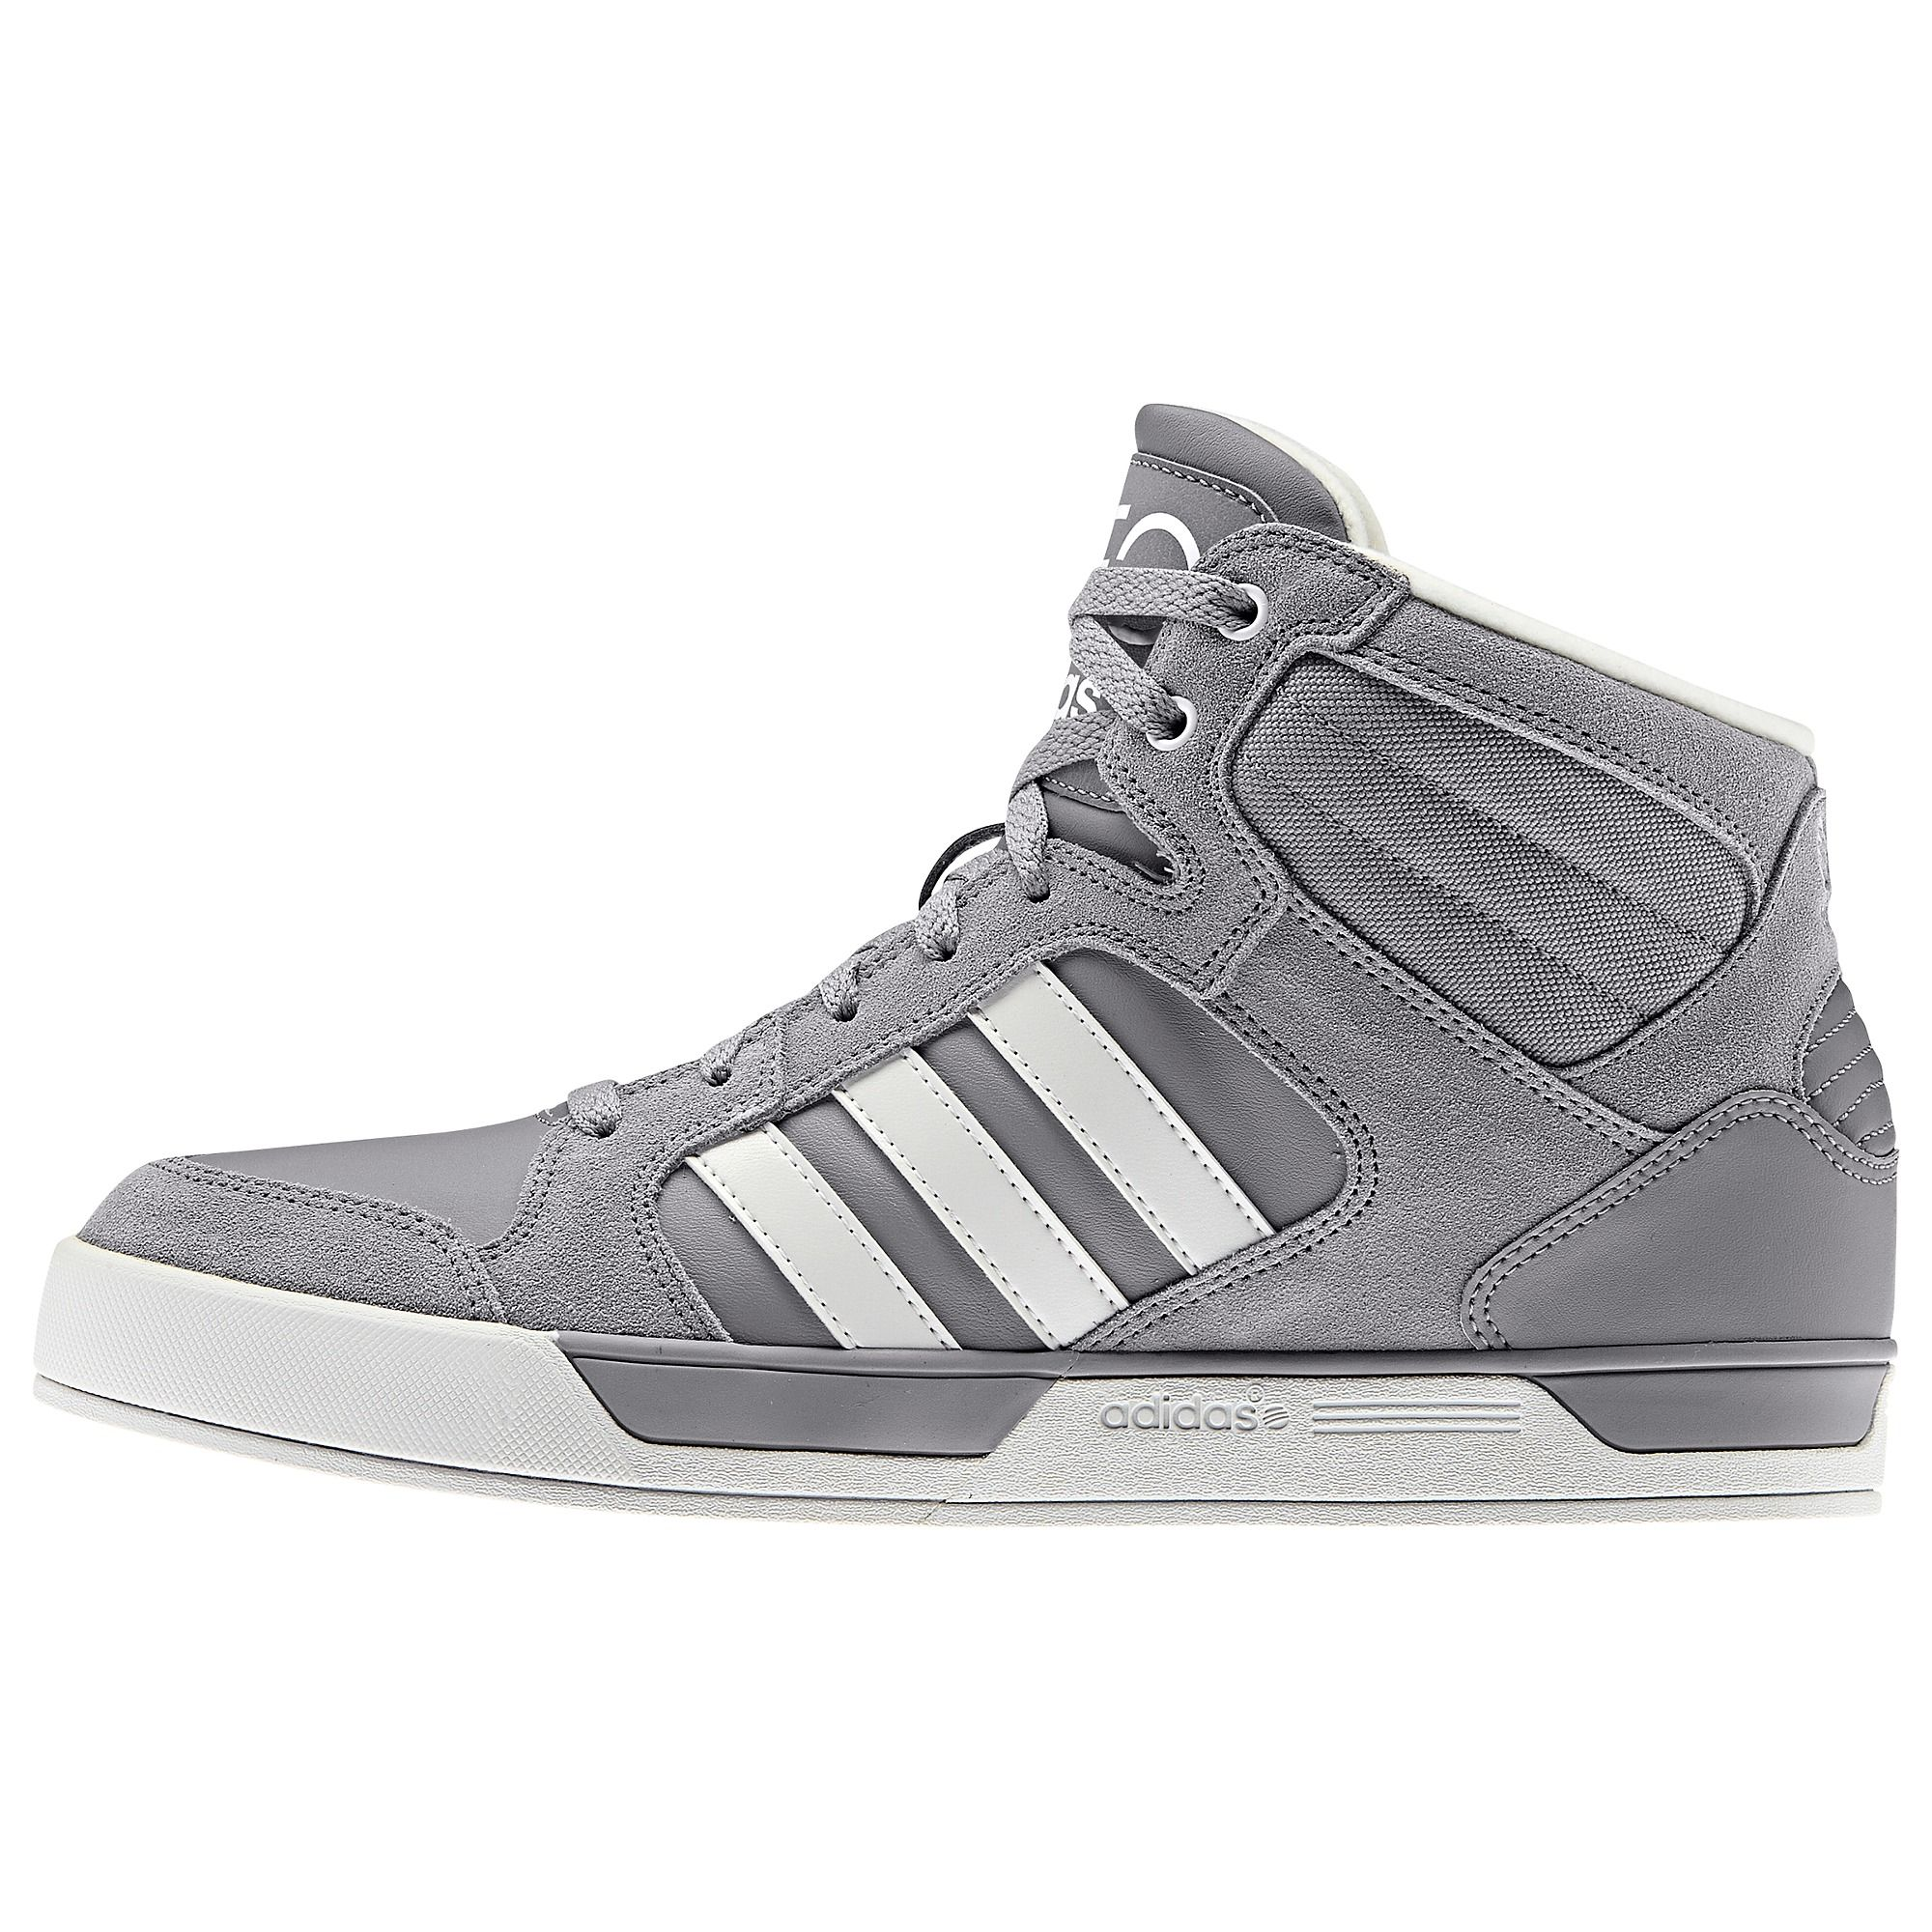 The adidas NEO Label BBNEO Raleigh shoes take a classic basketball-style  shoe and work